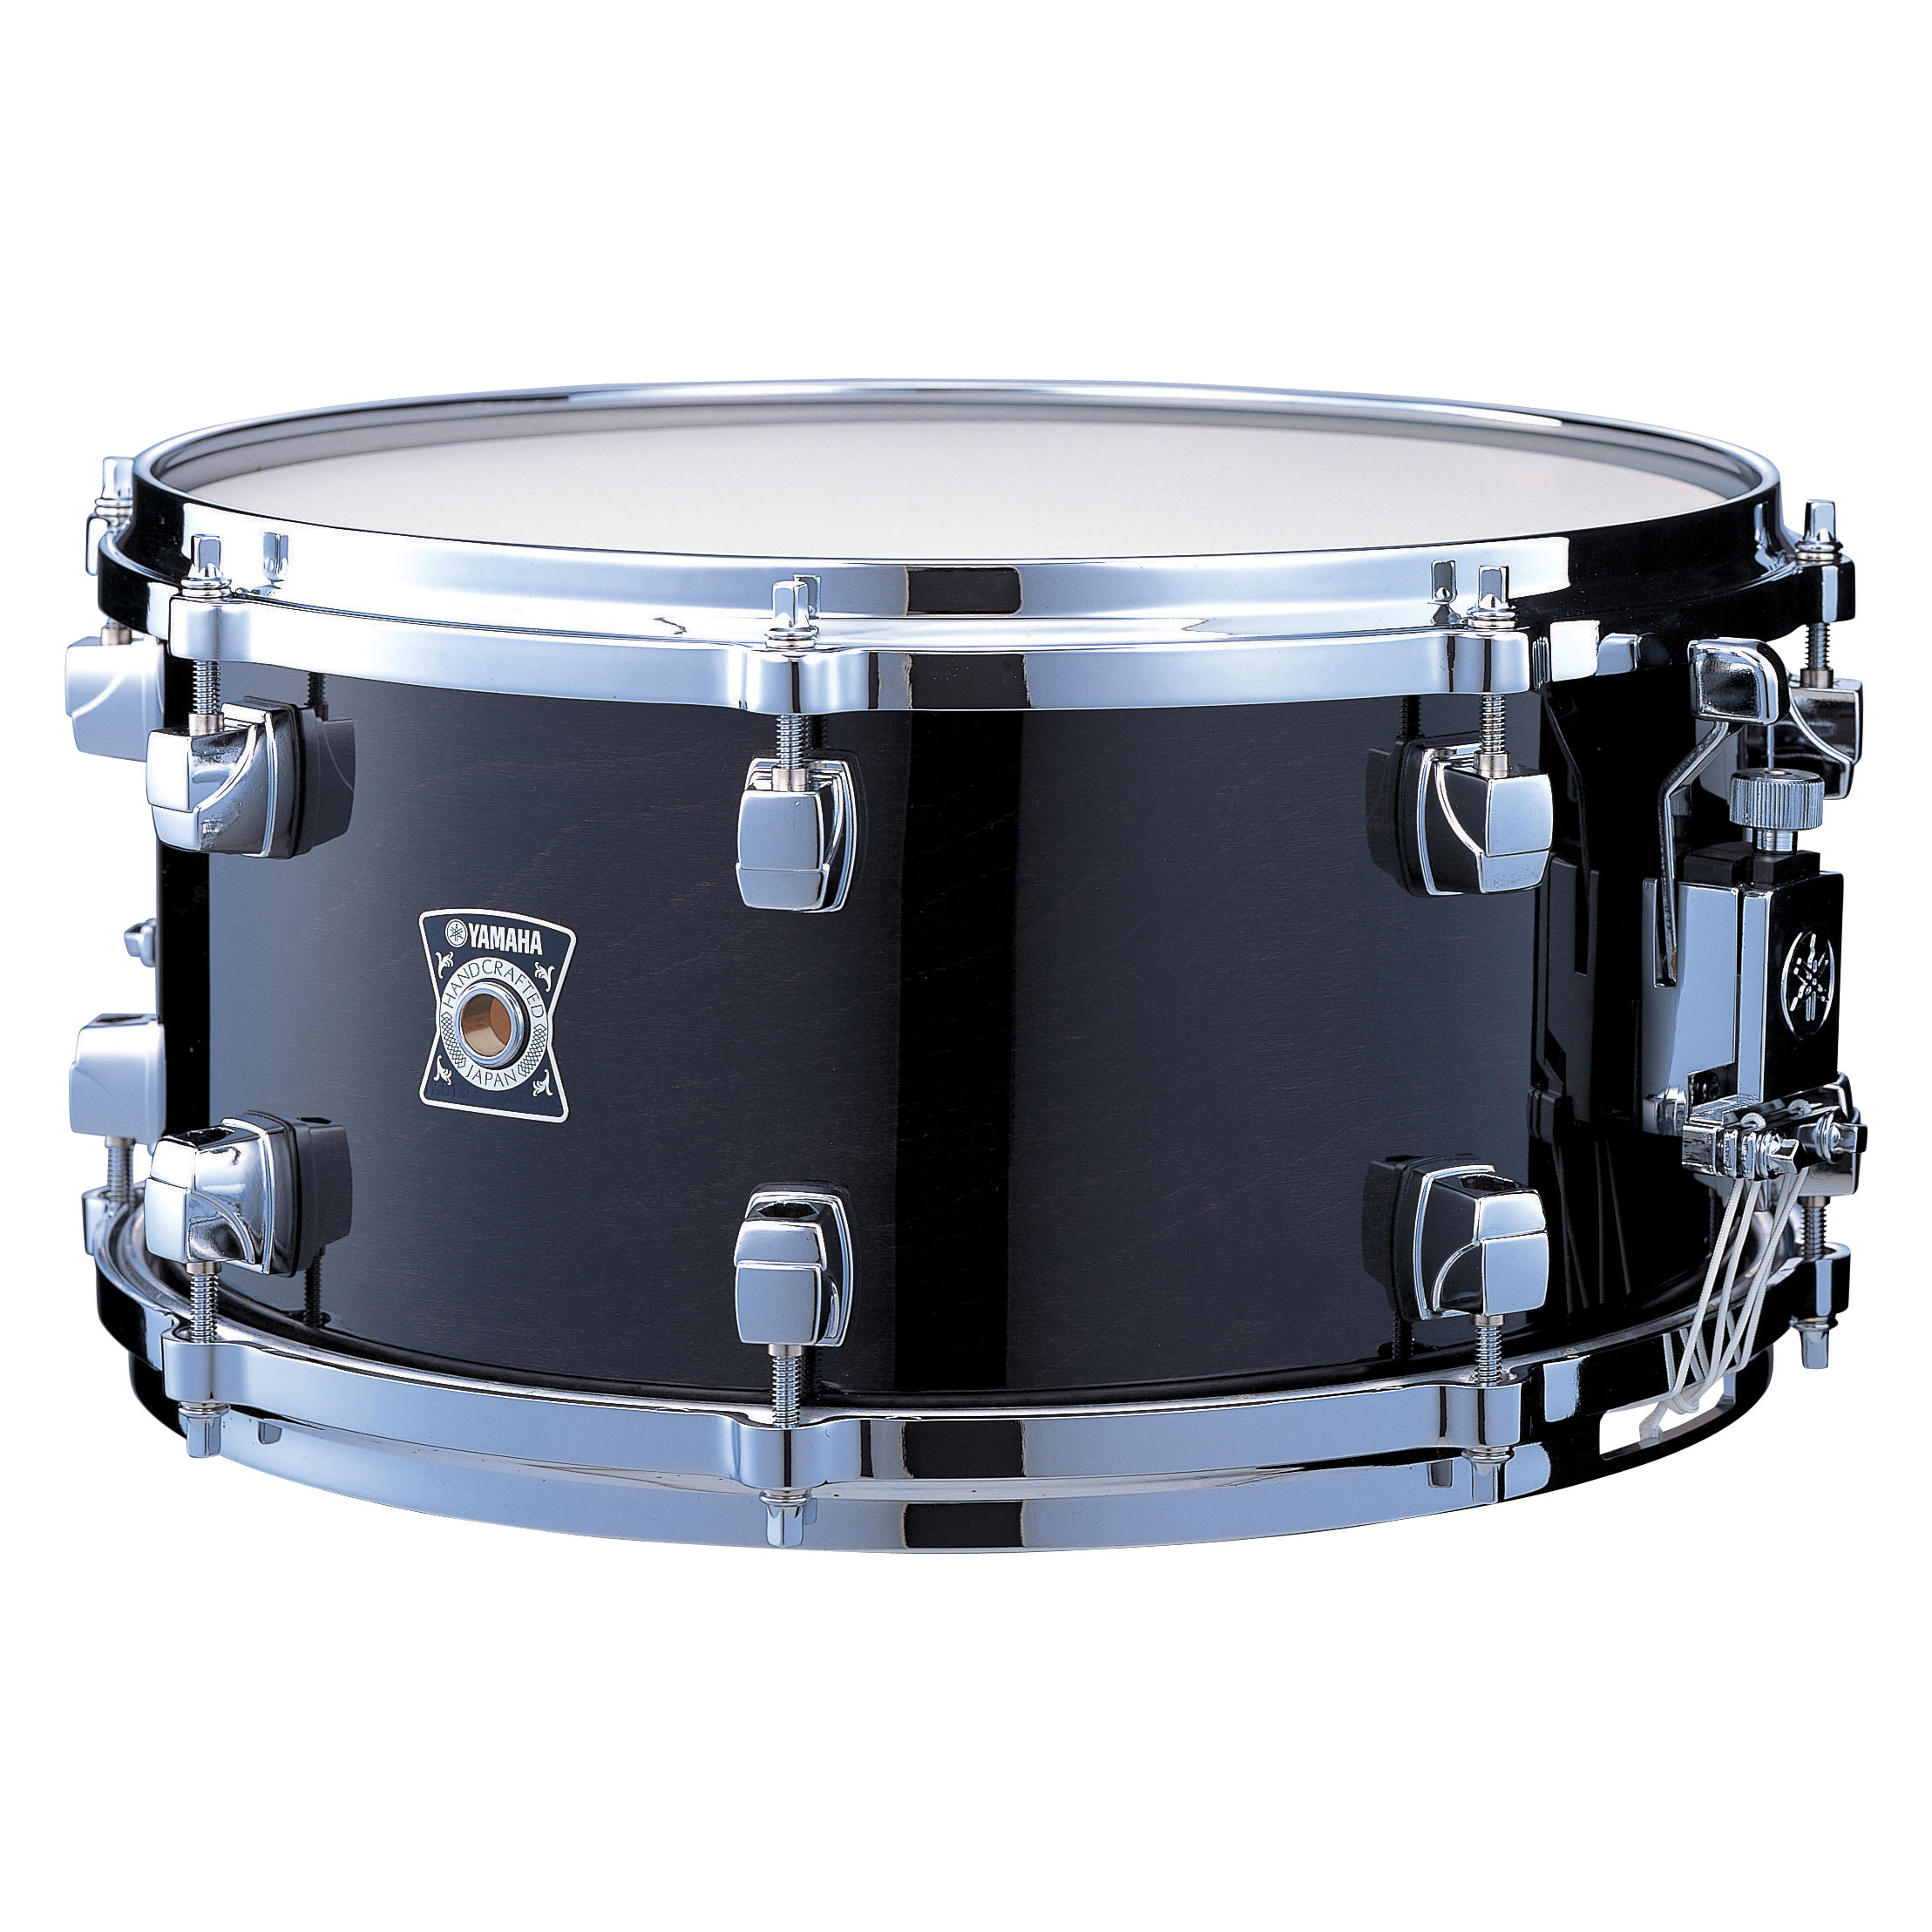 "Yamaha 13"" x 6.5"" Sensitive Series Black Maple Snare Drum"